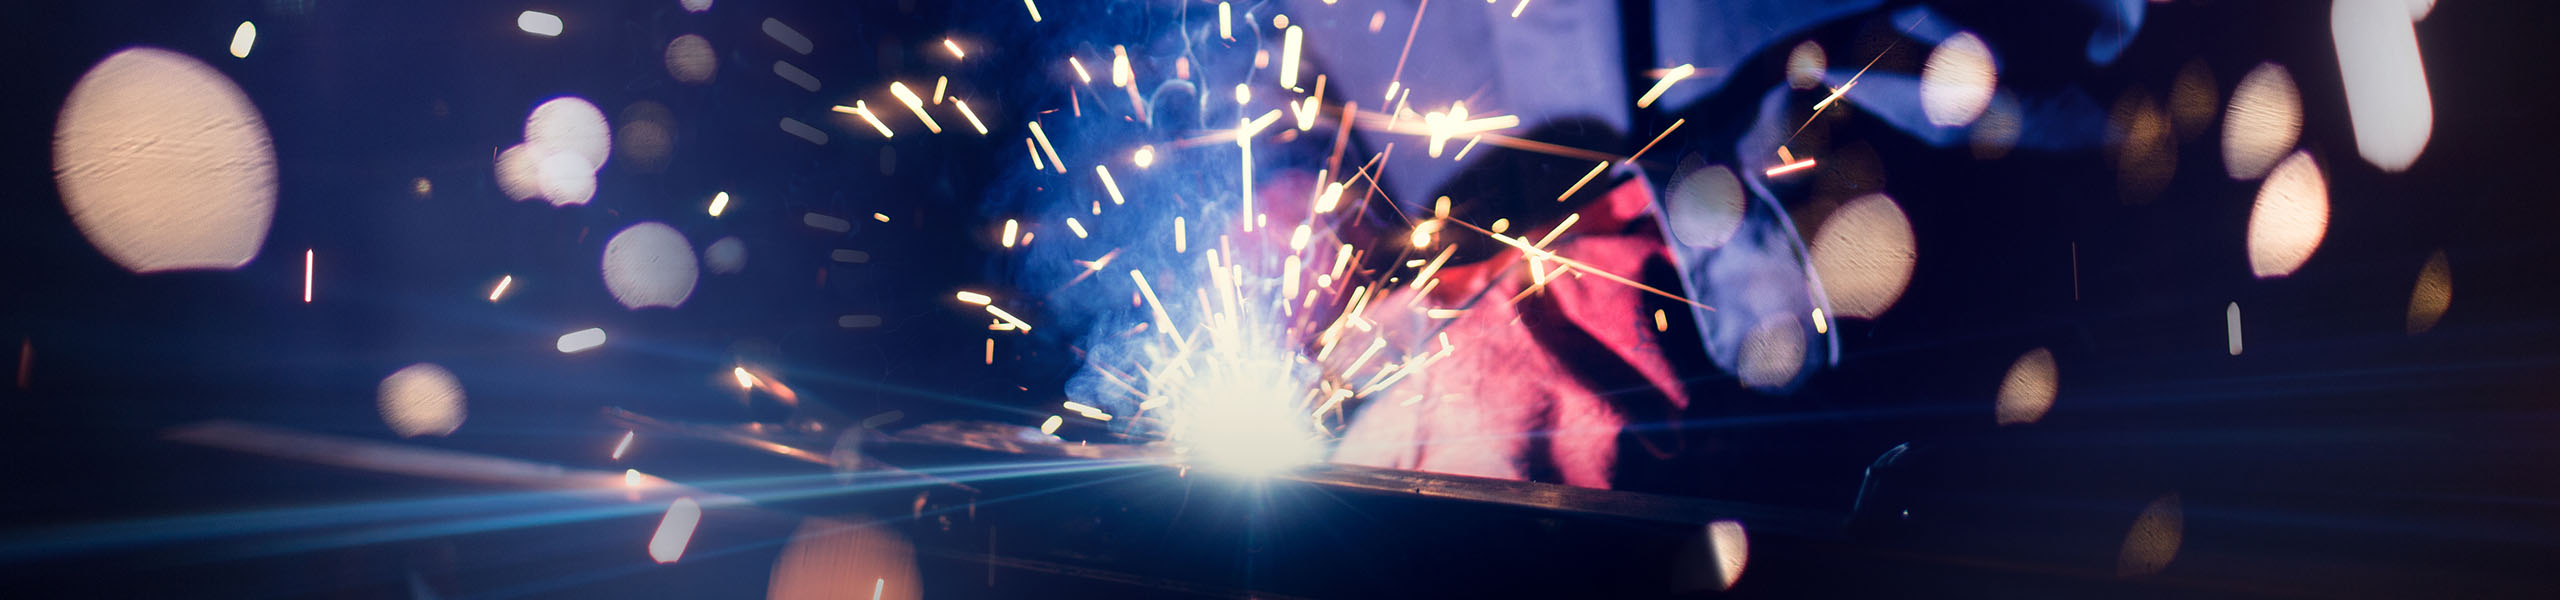 http://Blurred%20Sparks%20from%20welding